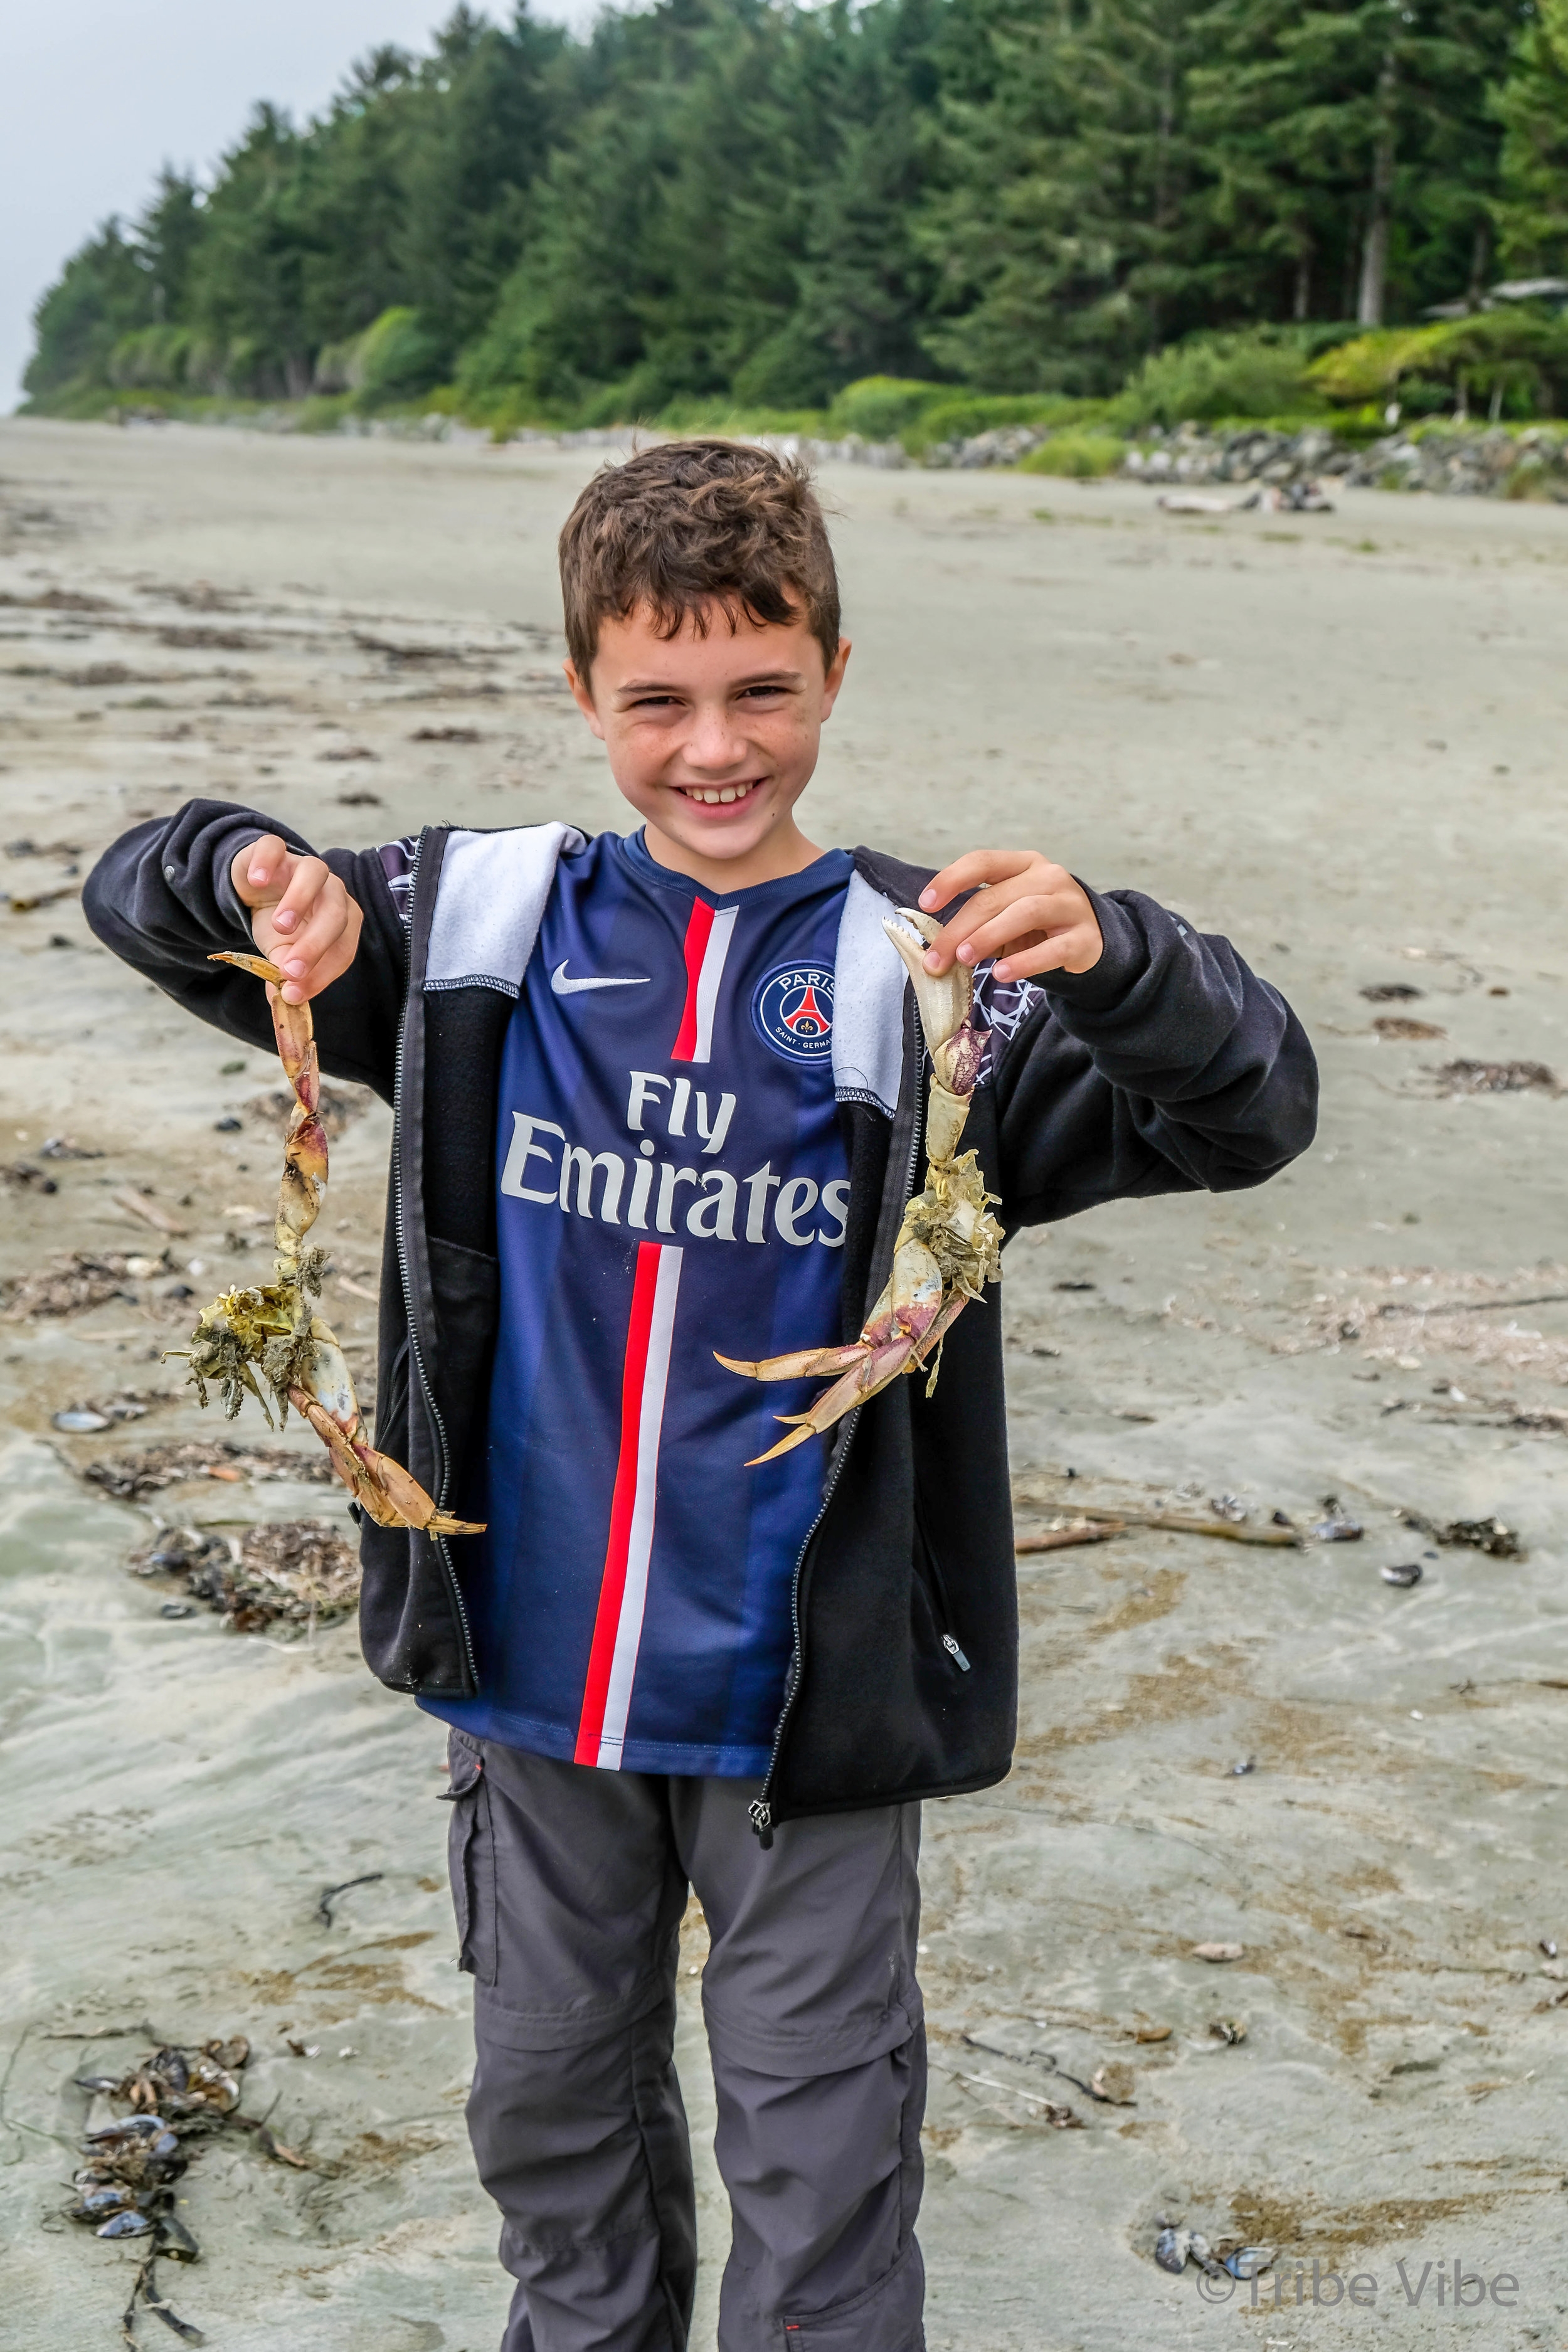 Finding crabs on Chesterman beach, Tofino, BC